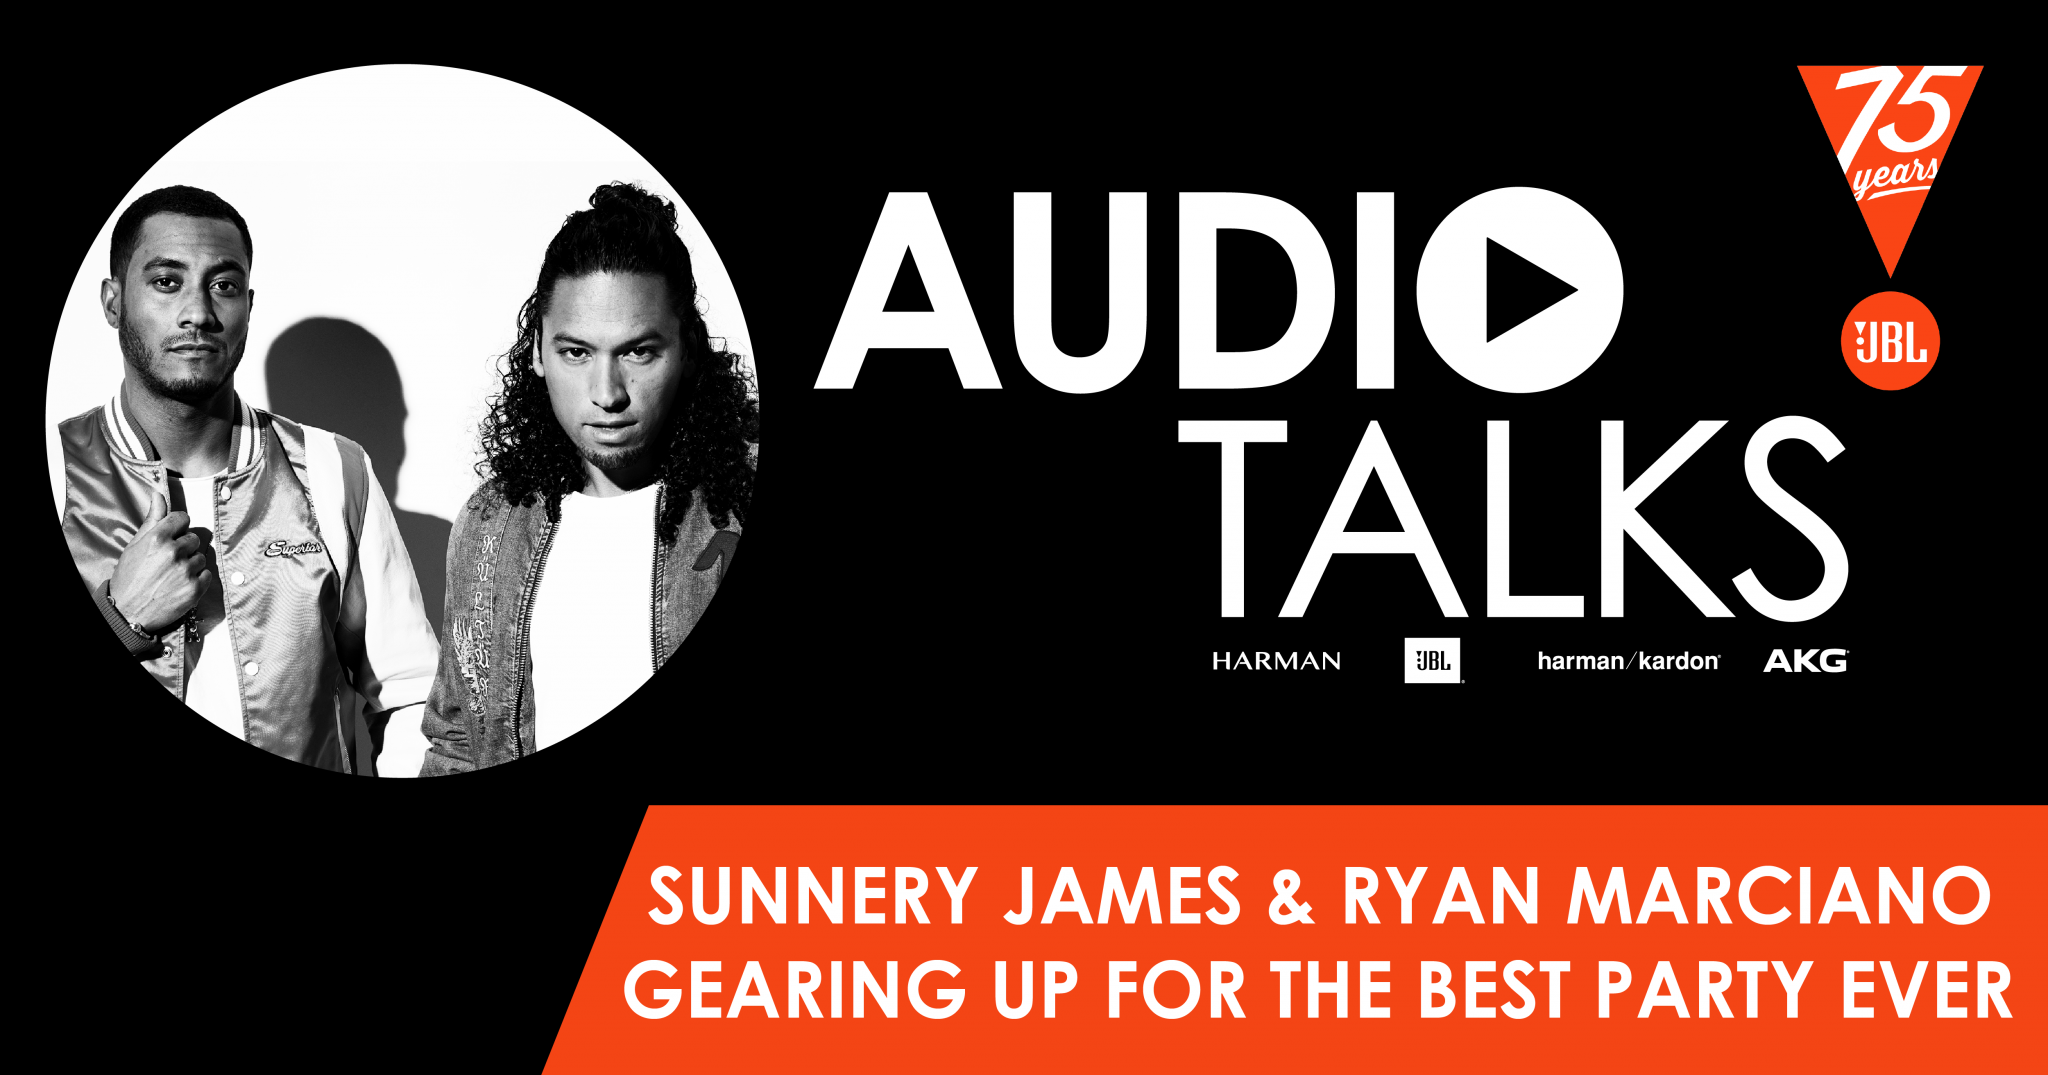 Sunnery James & Ryan Marciano Gearing Up For The Best Party Ever